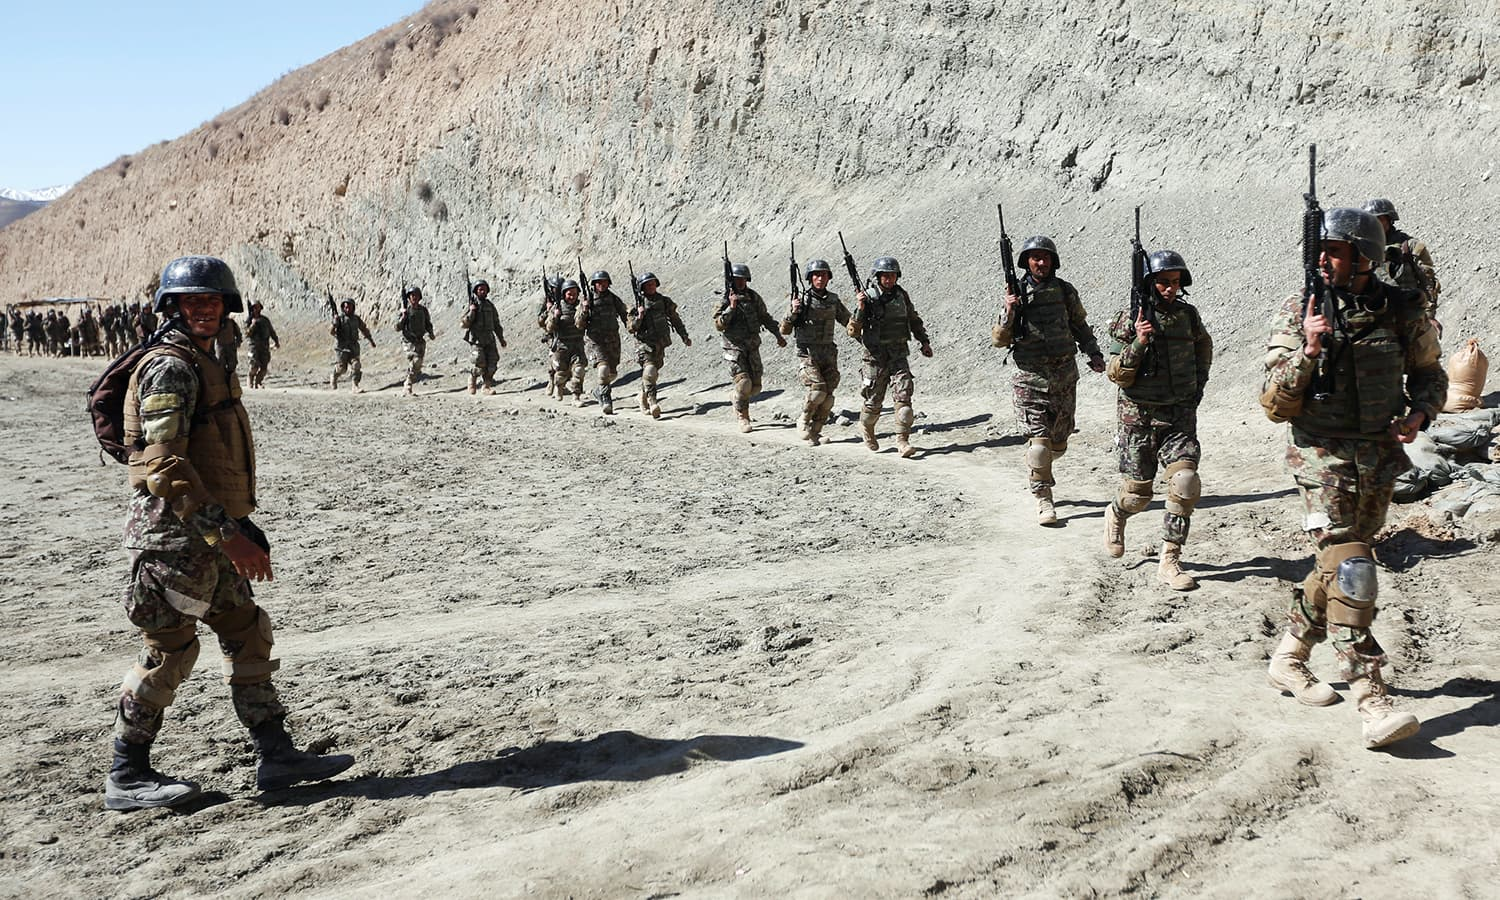 New recruits to the Afghan army Special Forces take part in a military exercise in Rishkhur. —Reuters